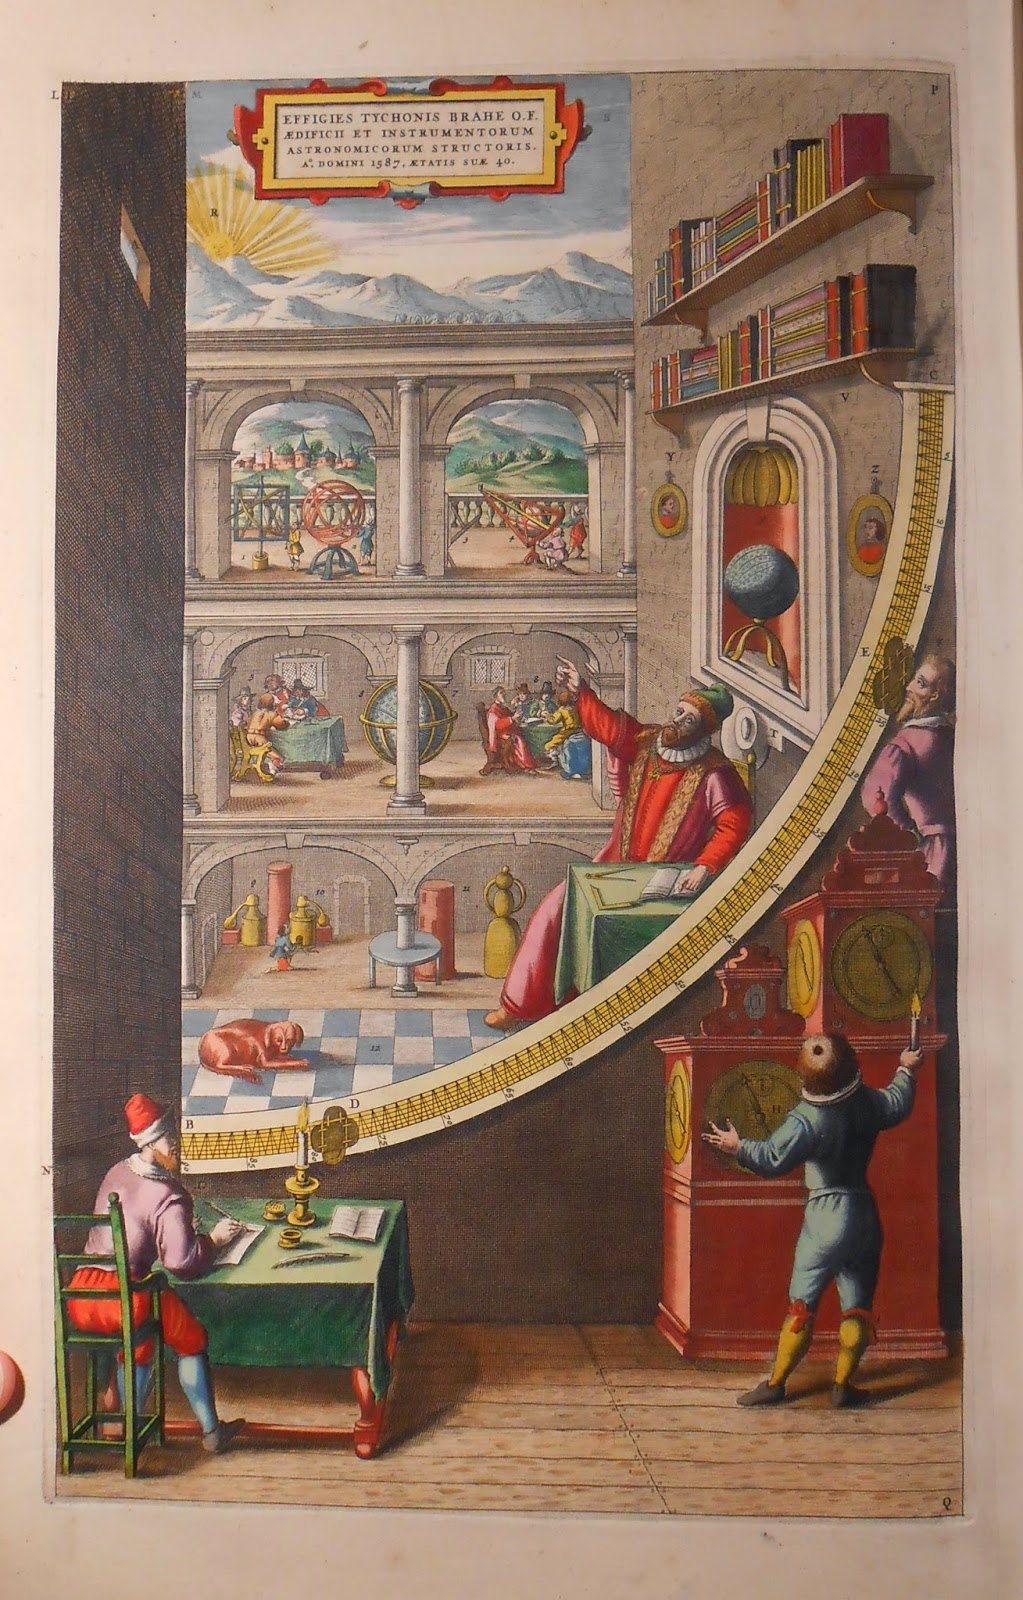 An illustration of the interior, filled with people engaged in various activities.